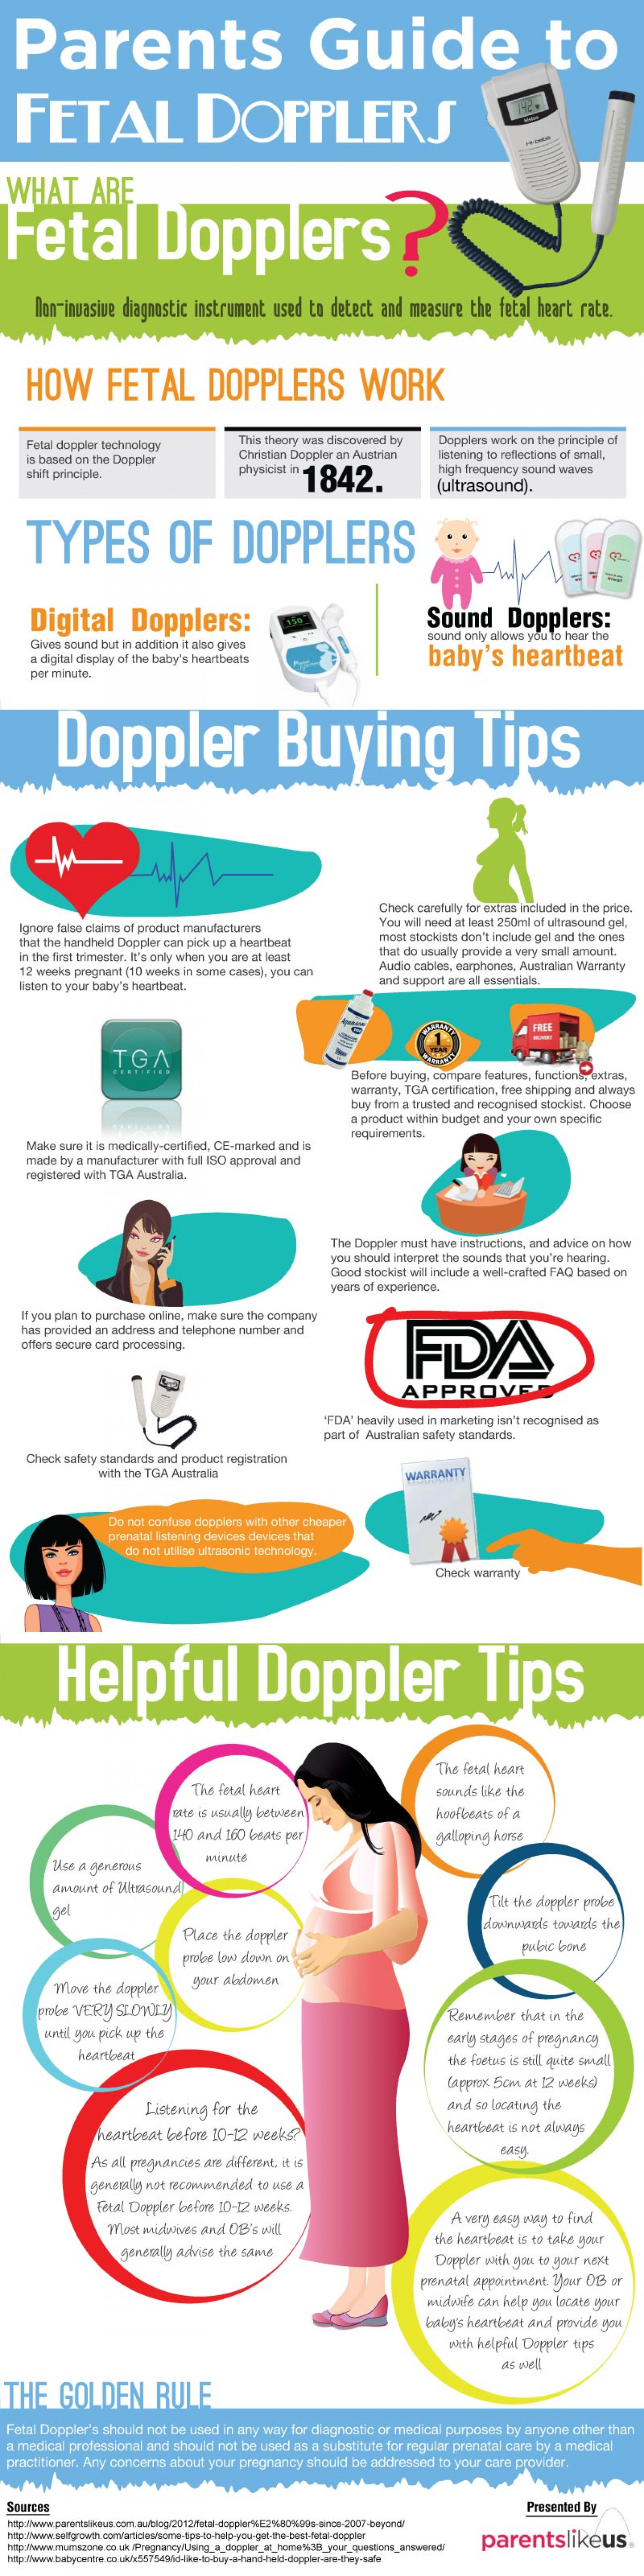 Parents Guide to Fetal Dopplers Infographic